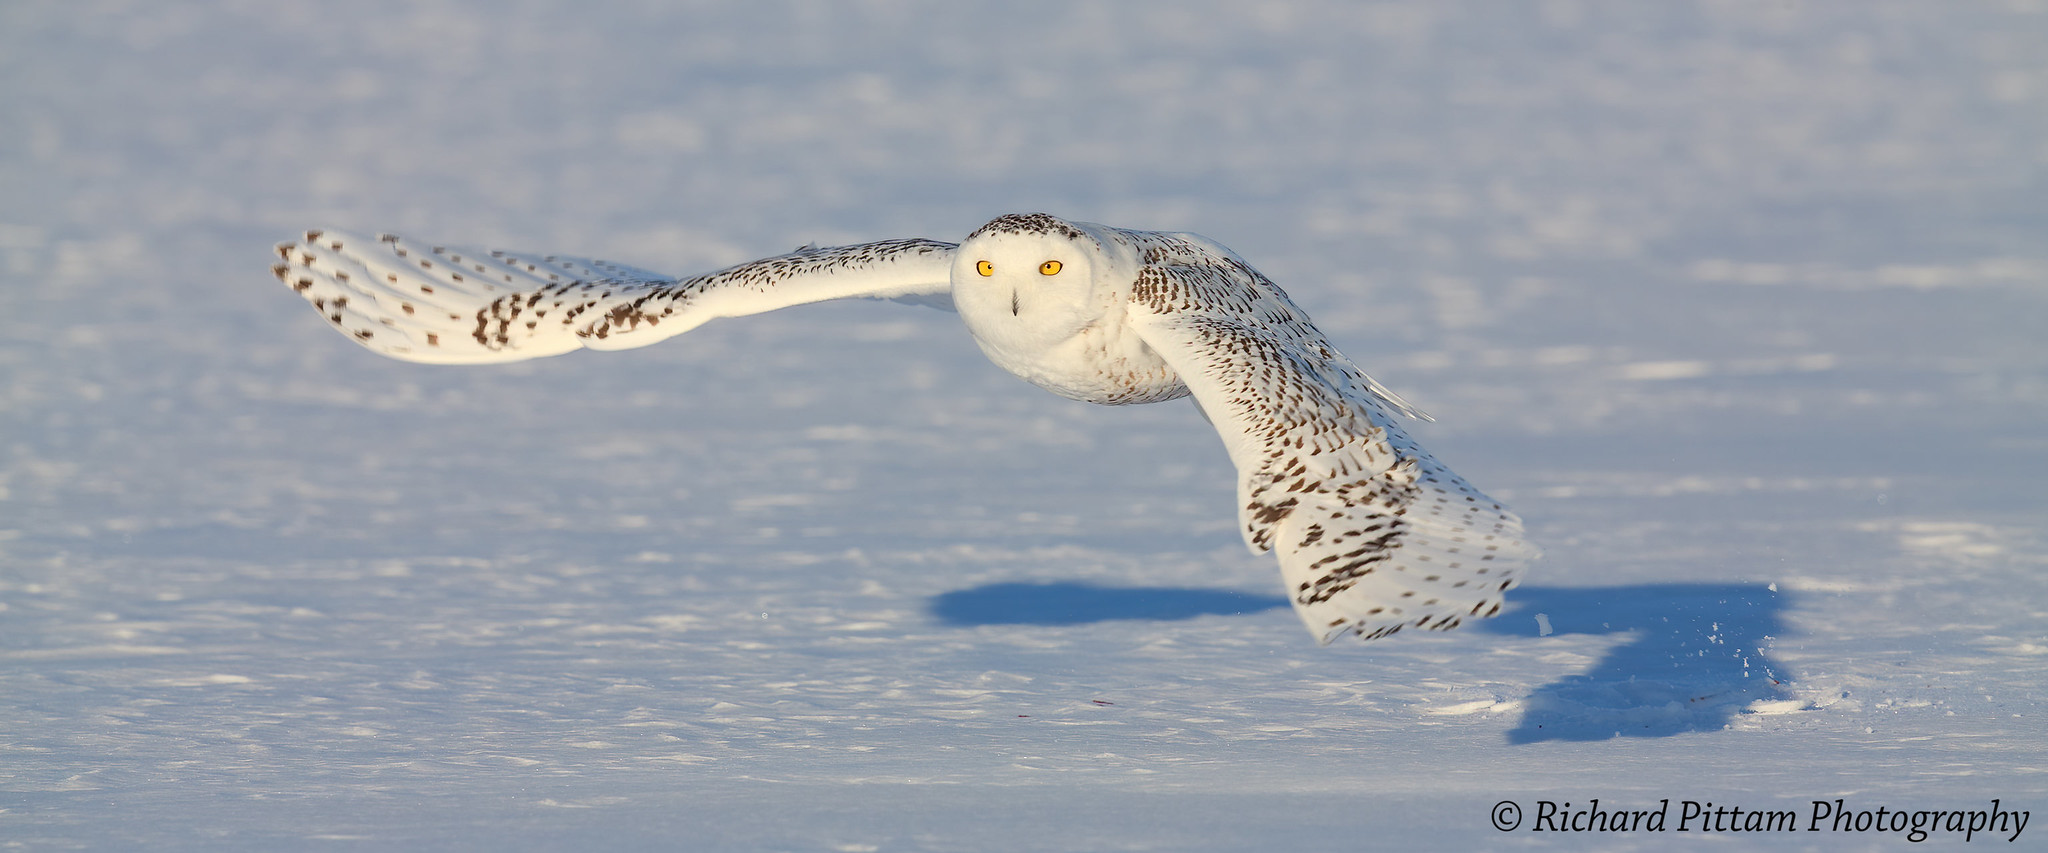 2014 shots re-processed - Snowy Owl, Ottawa